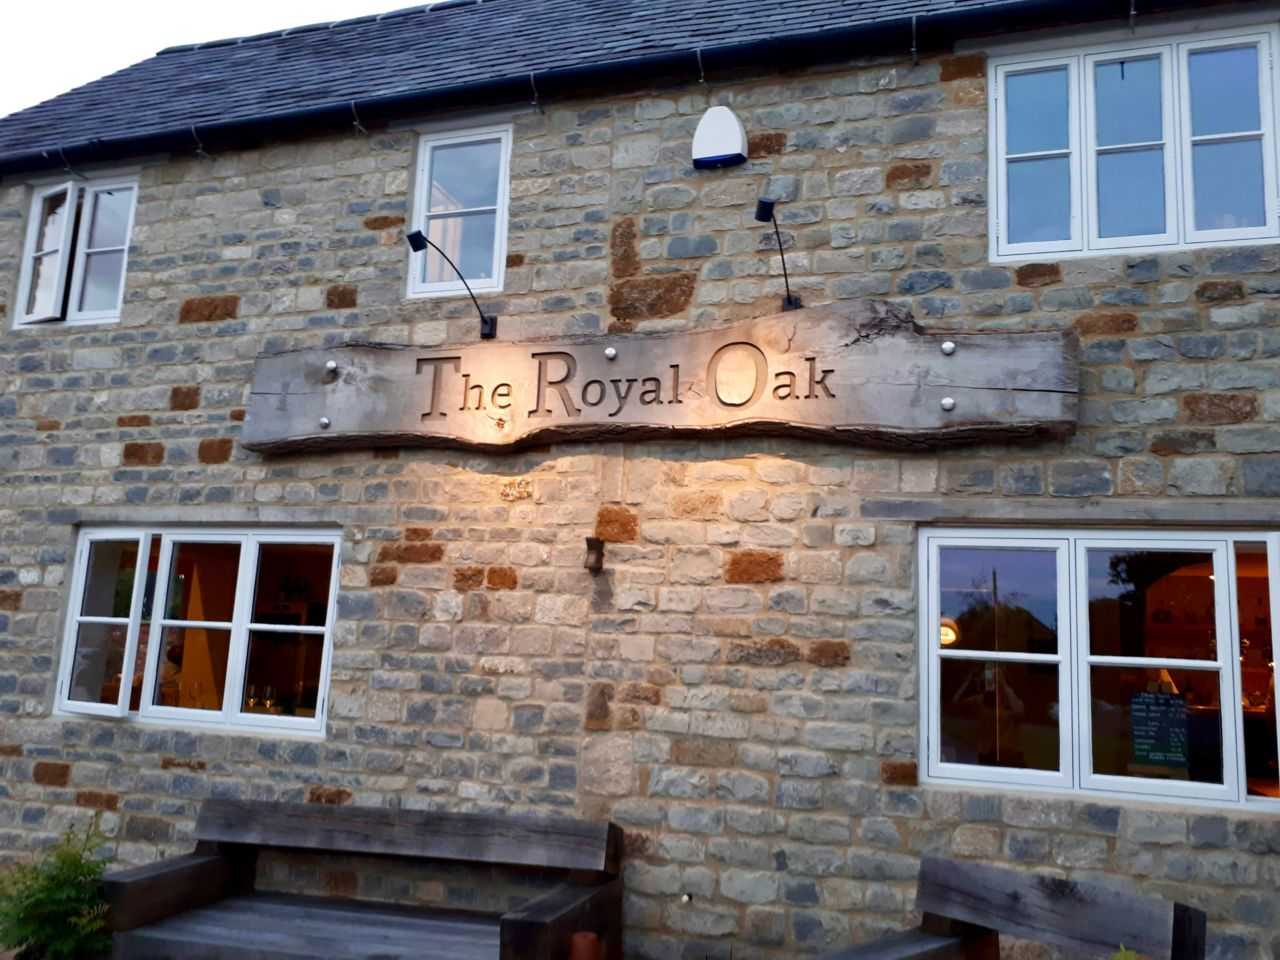 The Royal Oak at Whatcote review